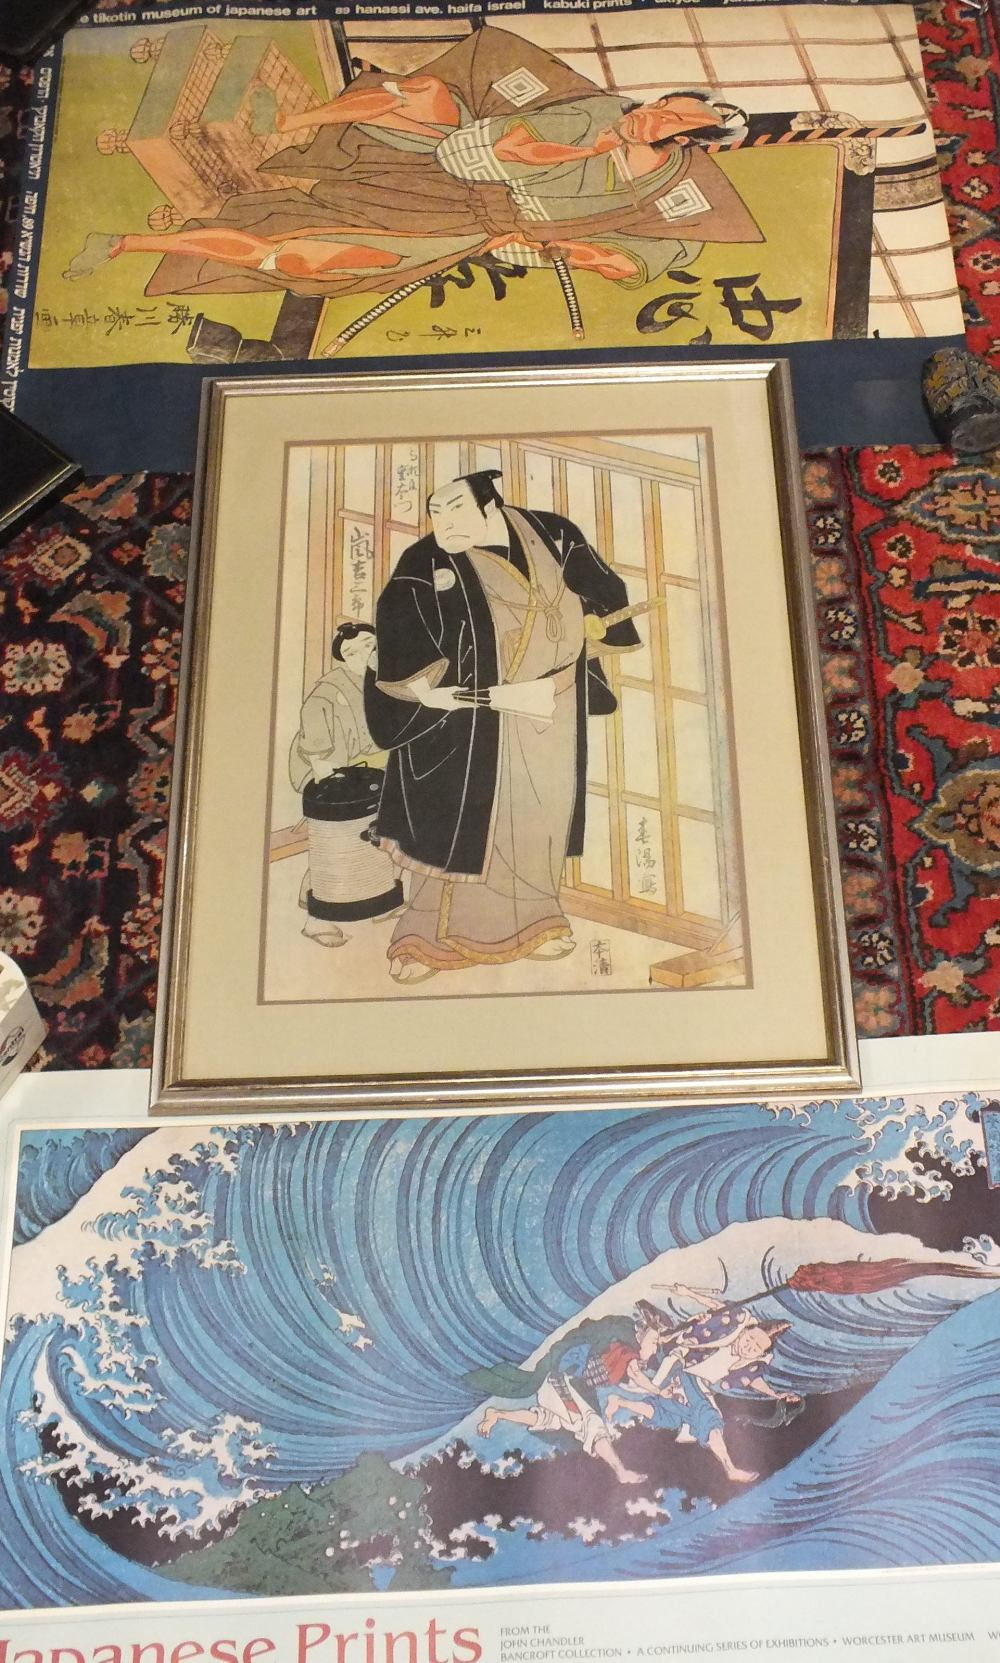 Lot 30 - SHUNKIN. A vintage study of a Kabuki actor, signed and inscribed with character marks in plate, over